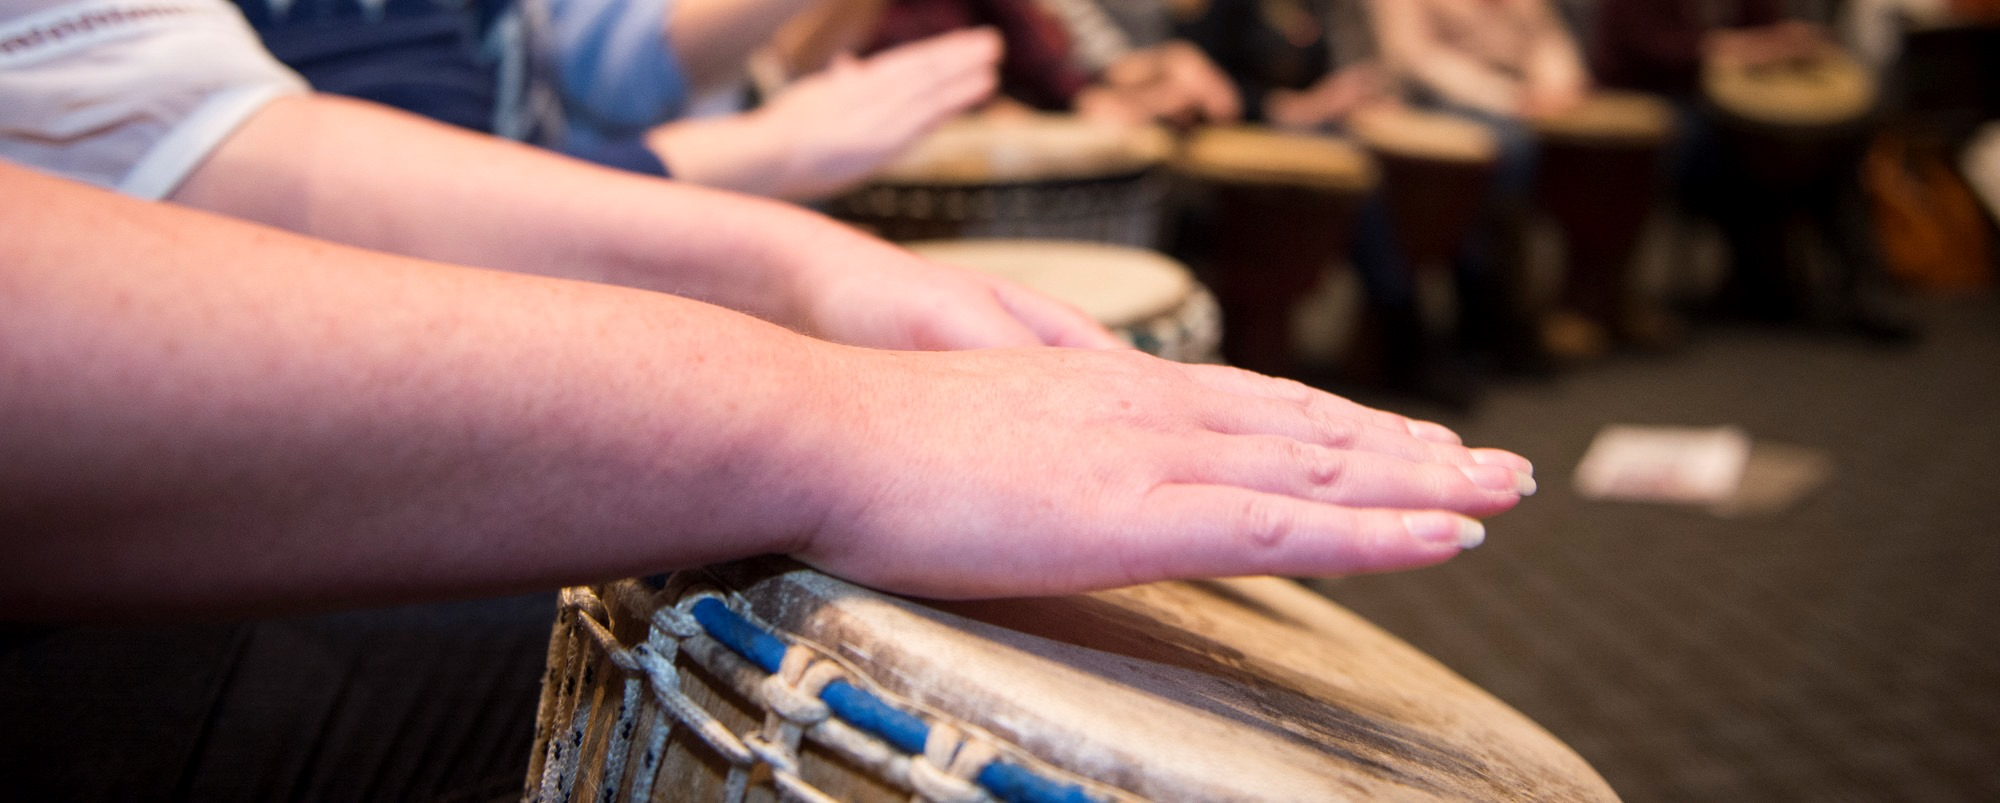 How important is hand coordination when learning African Drumming?